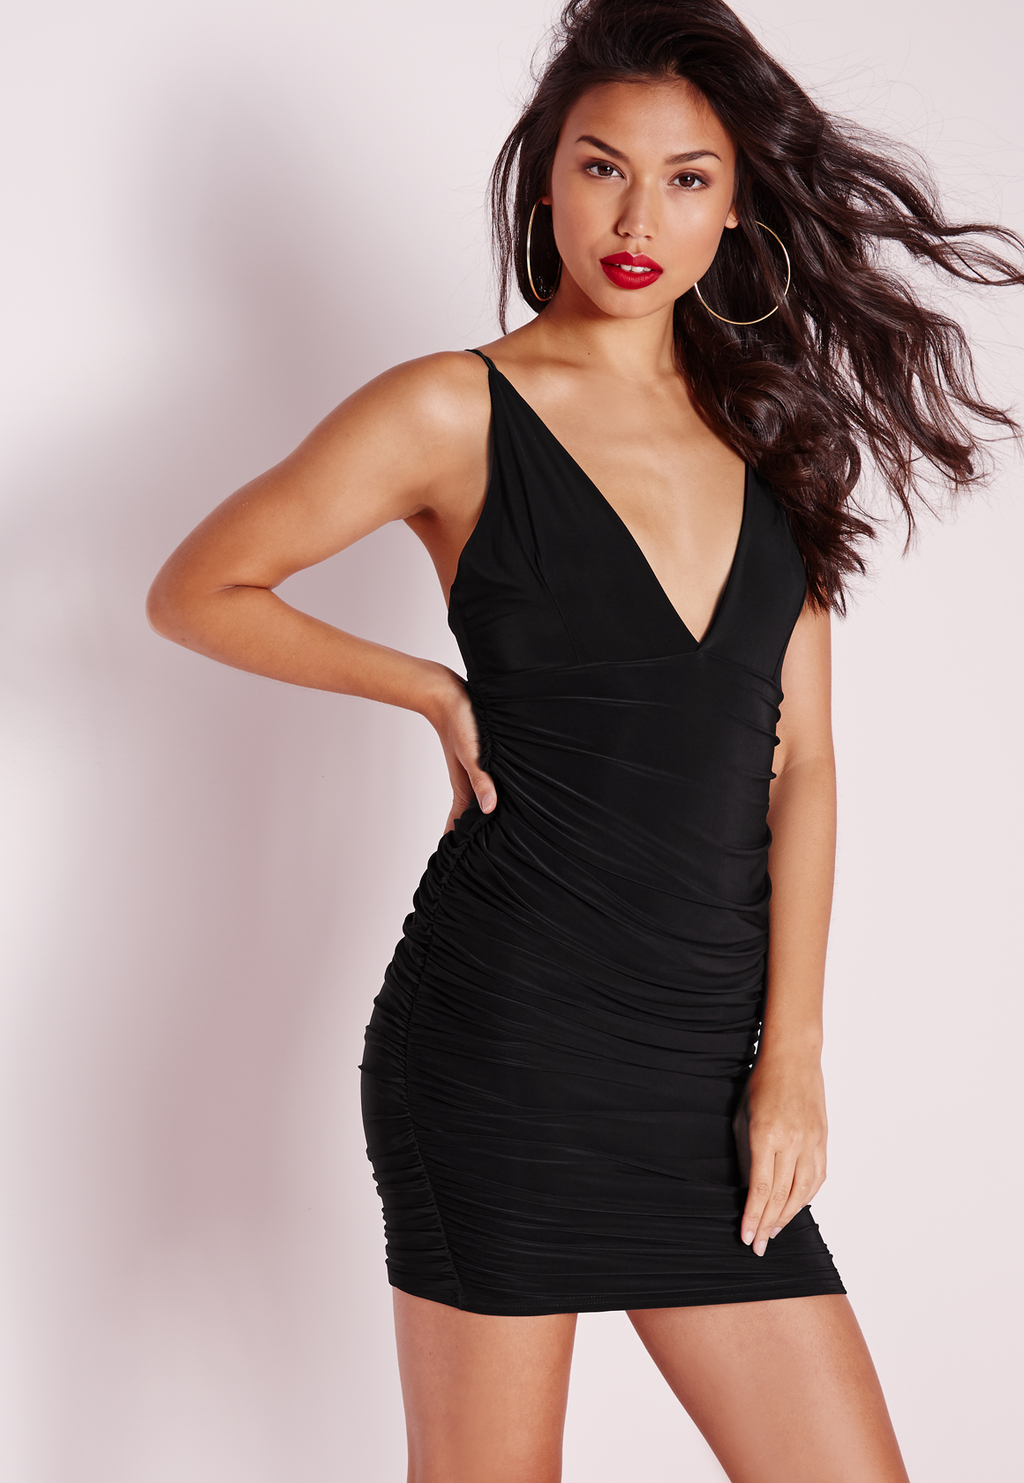 Petite Slinky Double Strap Ruche Bodycon Dress Black, Black - length: mini; neckline: low v-neck; fit: tight; pattern: plain; sleeve style: sleeveless; style: bodycon; predominant colour: black; occasions: evening; fibres: polyester/polyamide - stretch; sleeve length: sleeveless; texture group: jersey - clingy; pattern type: fabric; season: s/s 2016